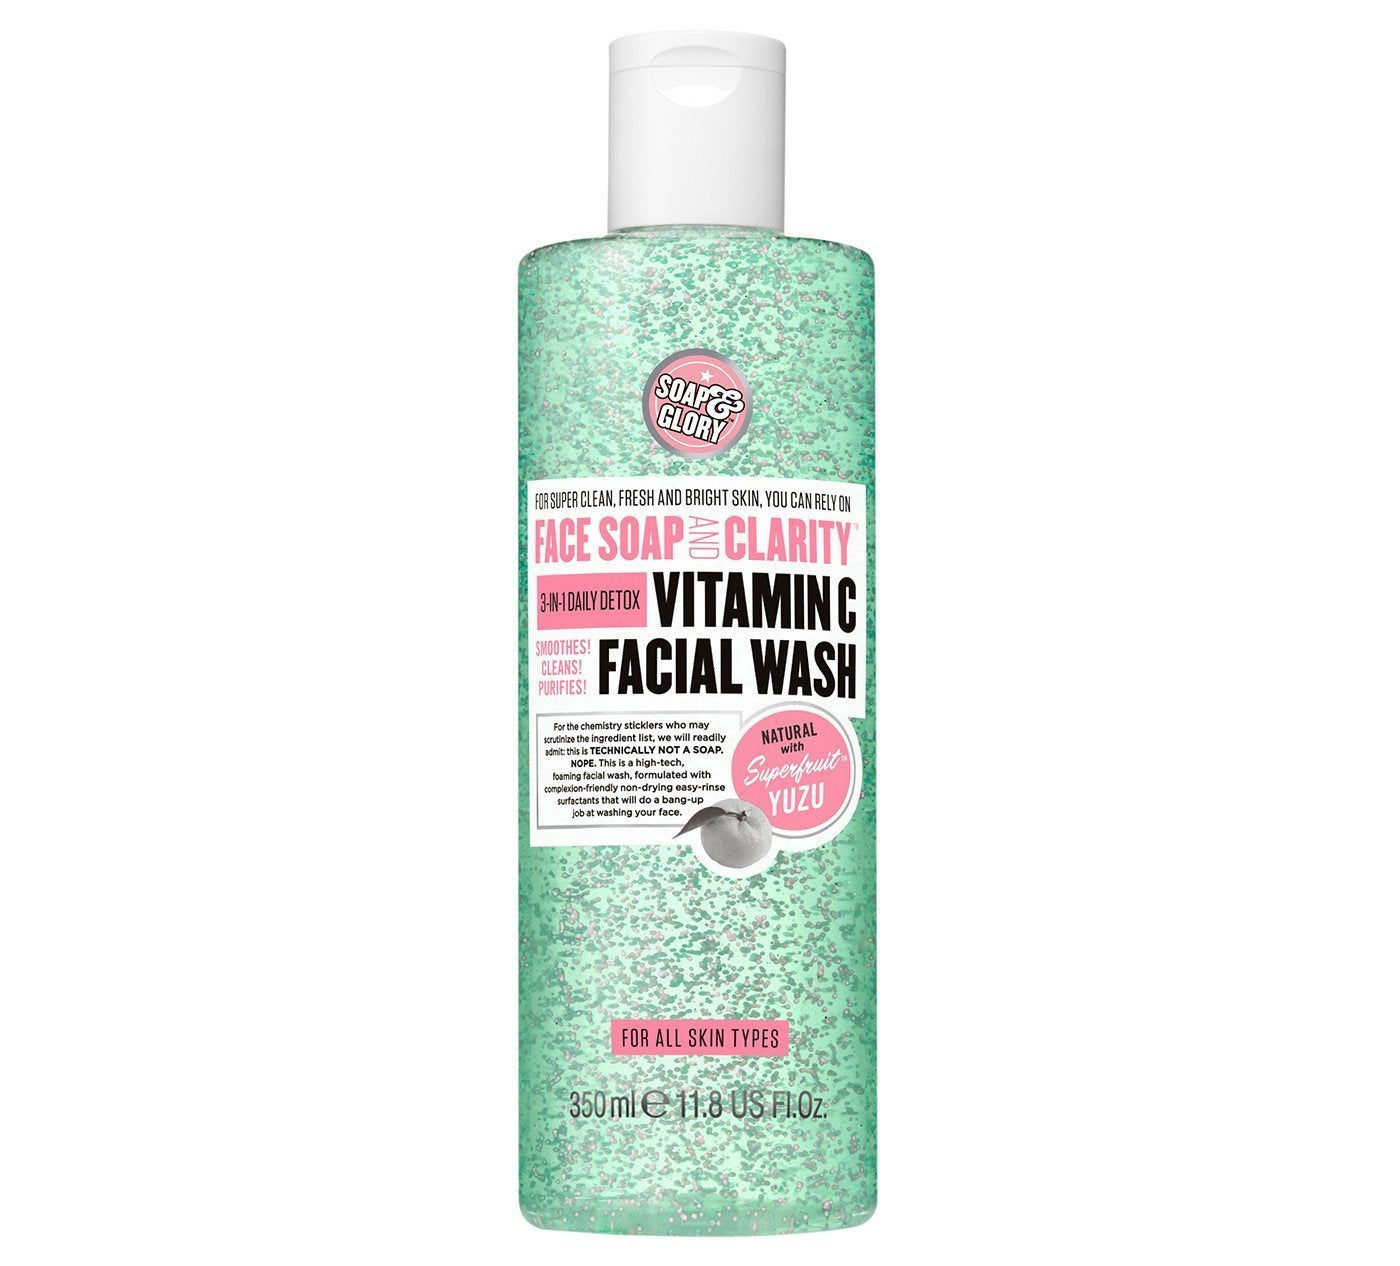 Soap & Glory Face Soap & Clarity Vitamin C Facial Wash